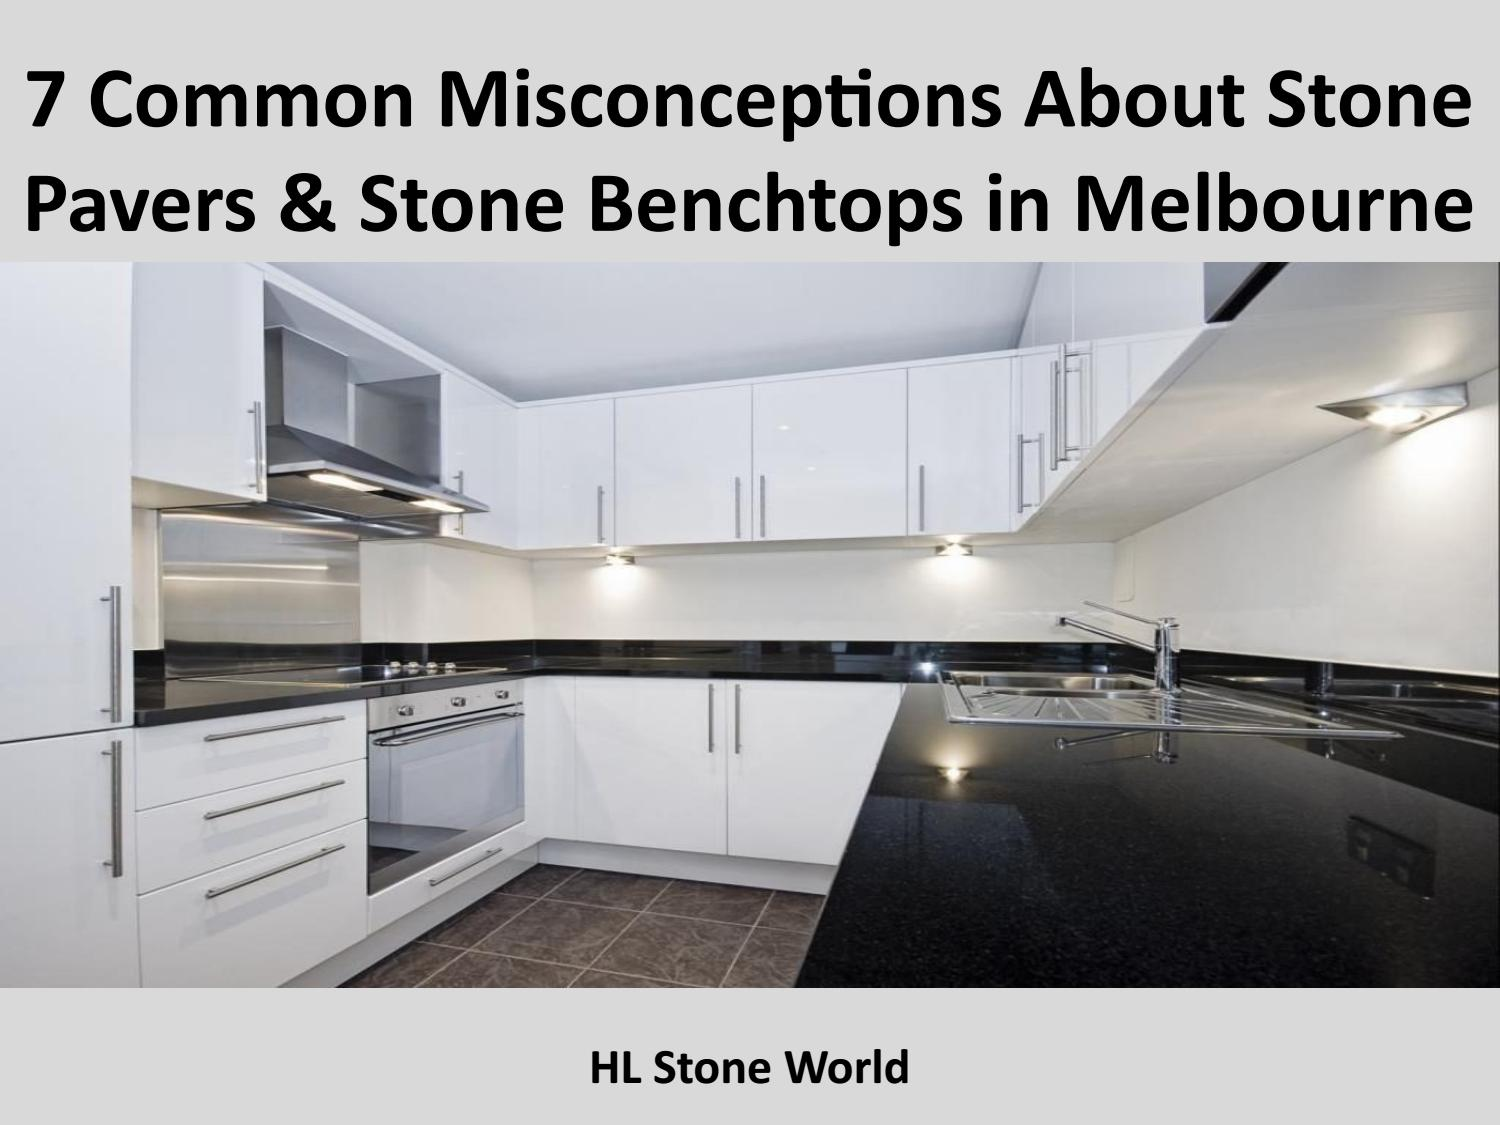 Benchtop Melbourne 7 Common Misconceptions About Stone Pavers Stone Benchtops In